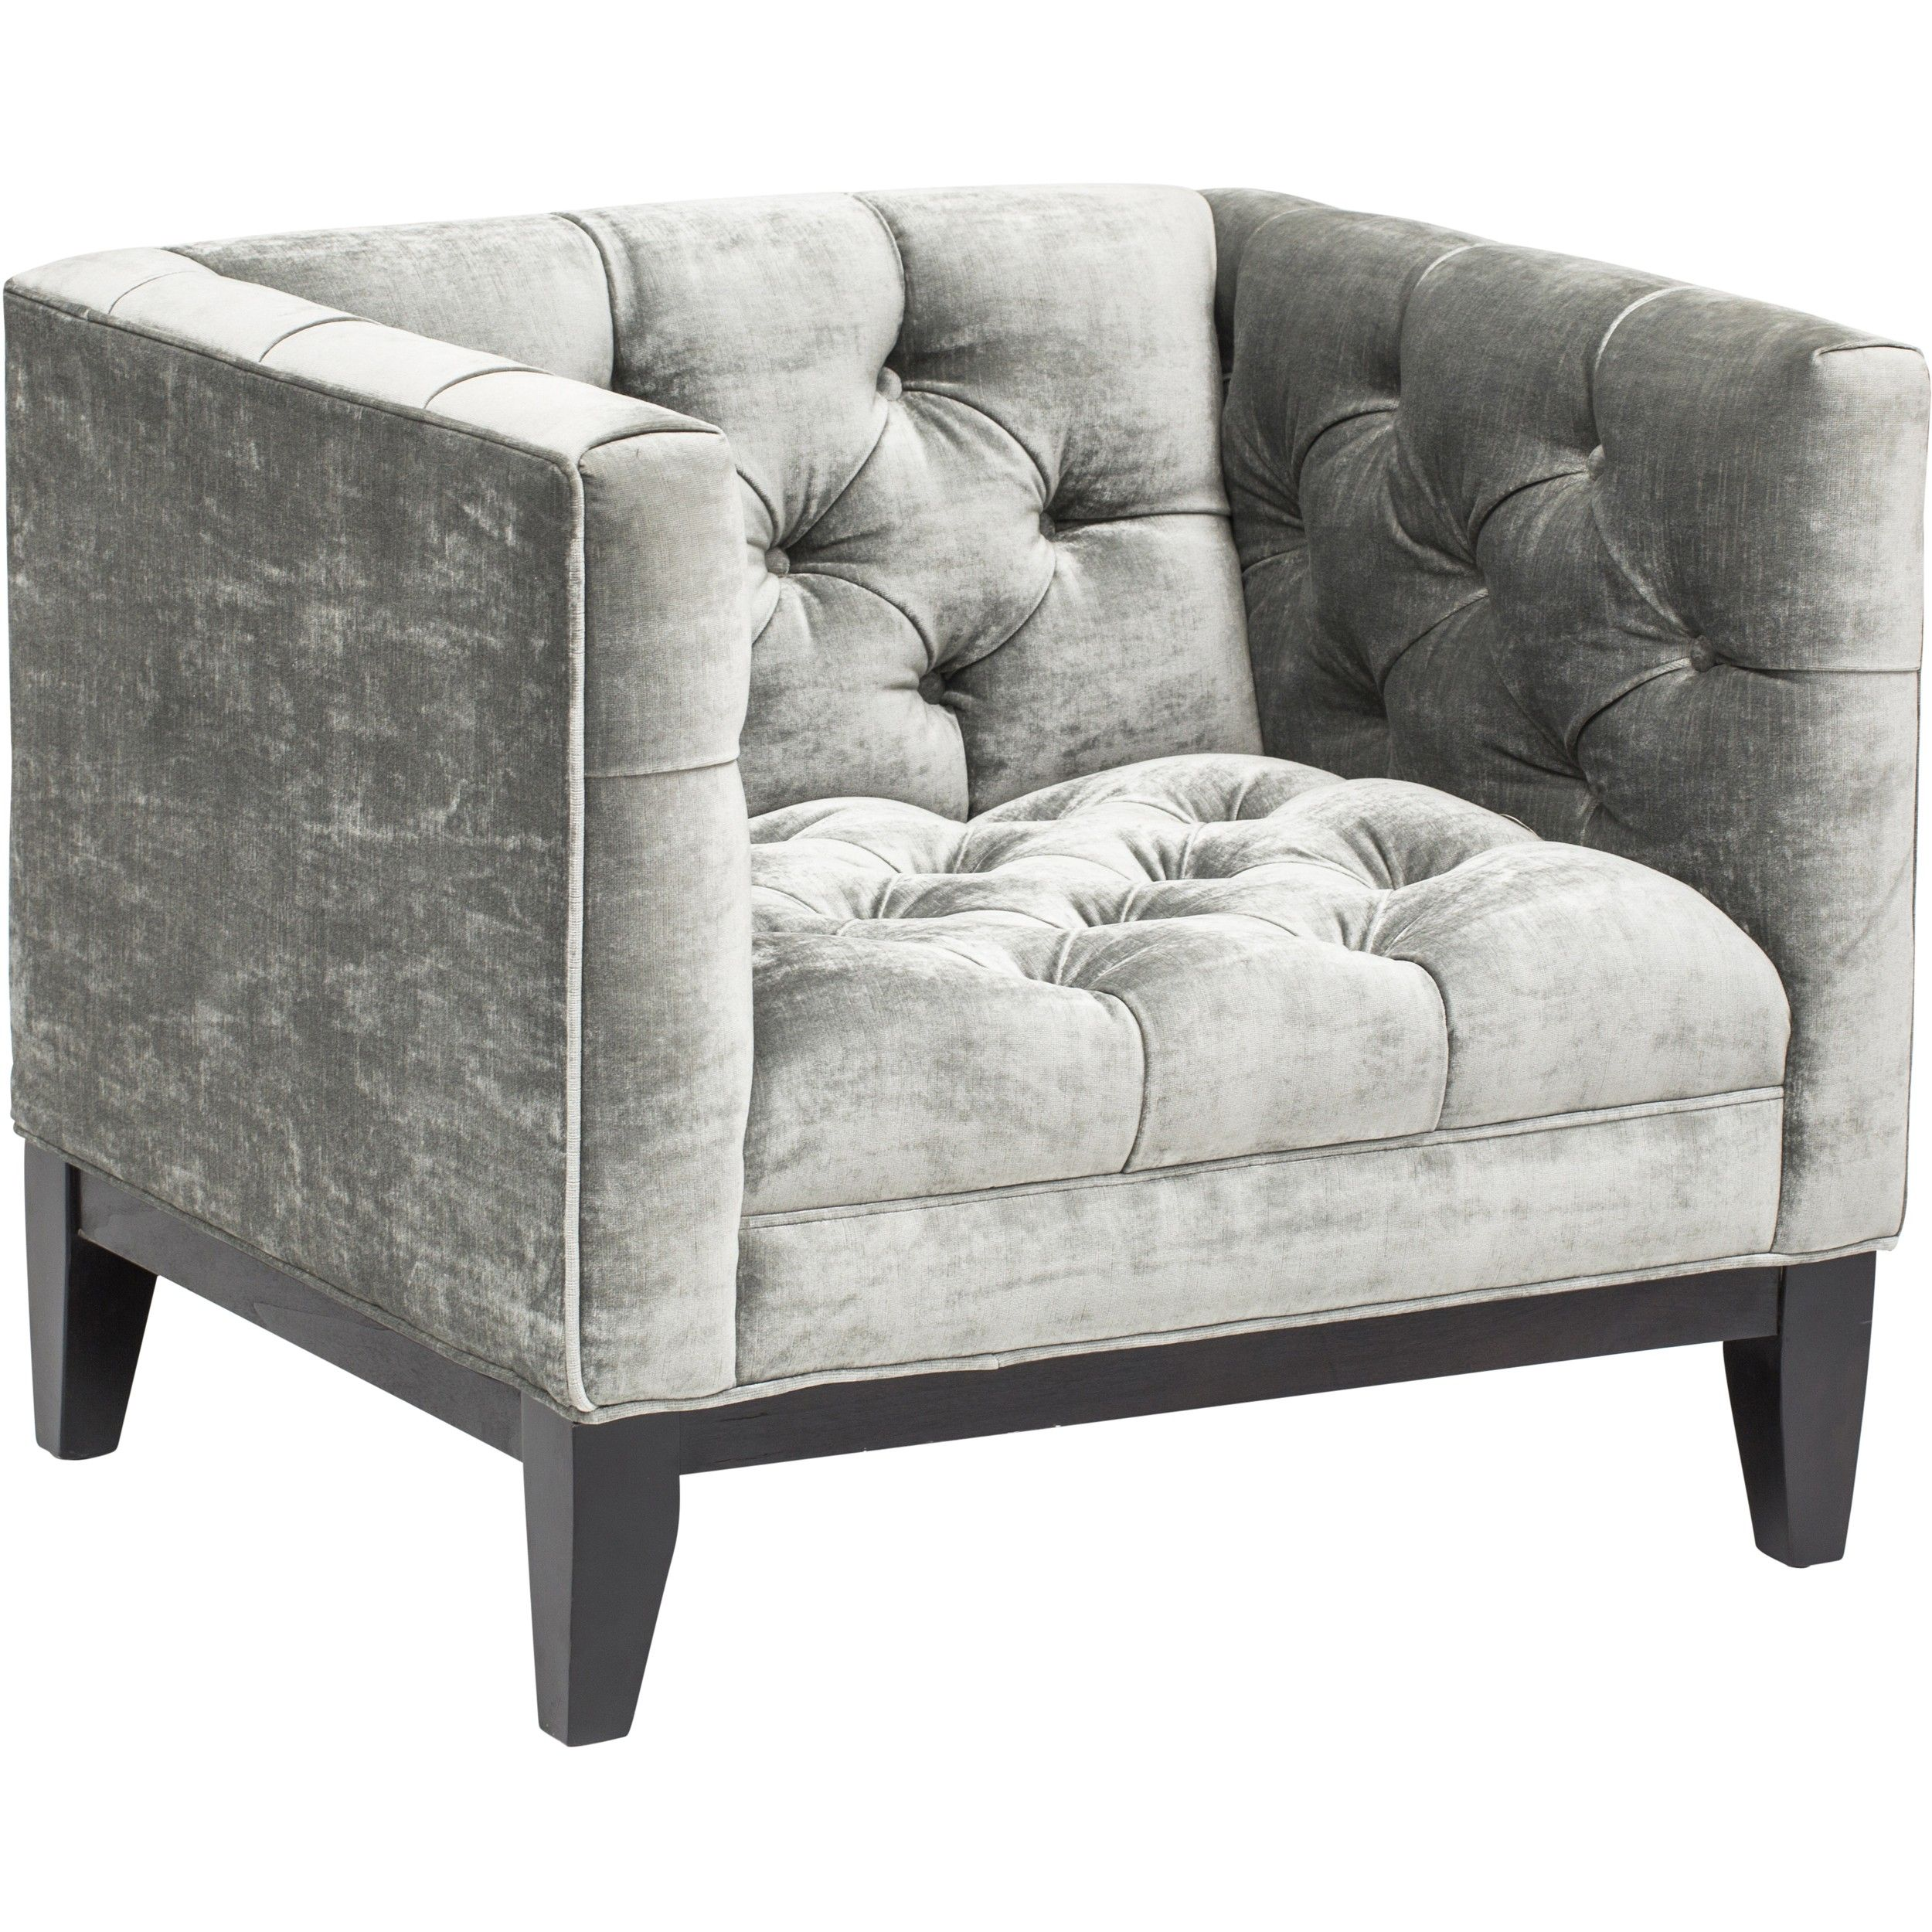 suggested shapefor the two accent chairs i suggest using a plain rh pinterest com